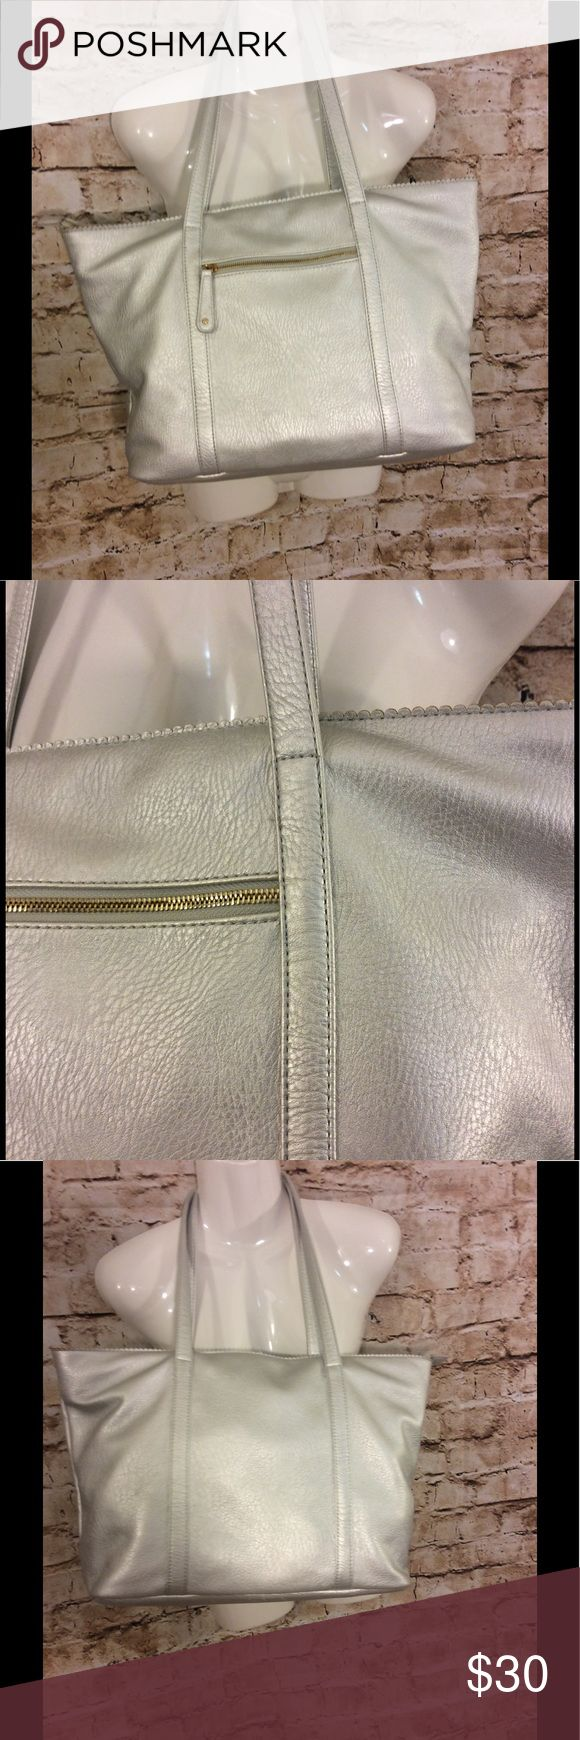 Street-level large silver tote/shoulder bag Good very gently used condition street-level large silver coat/shoulder bag Front pocket with gold tones zipper Large inside compartment Smaller zipper pocket inside Two smaller open pockets inside Black with a diamond shape detail inside Cloth lining No nicks or damage to Tote/purse  very clean condition Height of bag is approximately 12 inches Width of bag  is approximately 14 inches Depth of bag is approximately 6 1/4 inches Height of strap is…